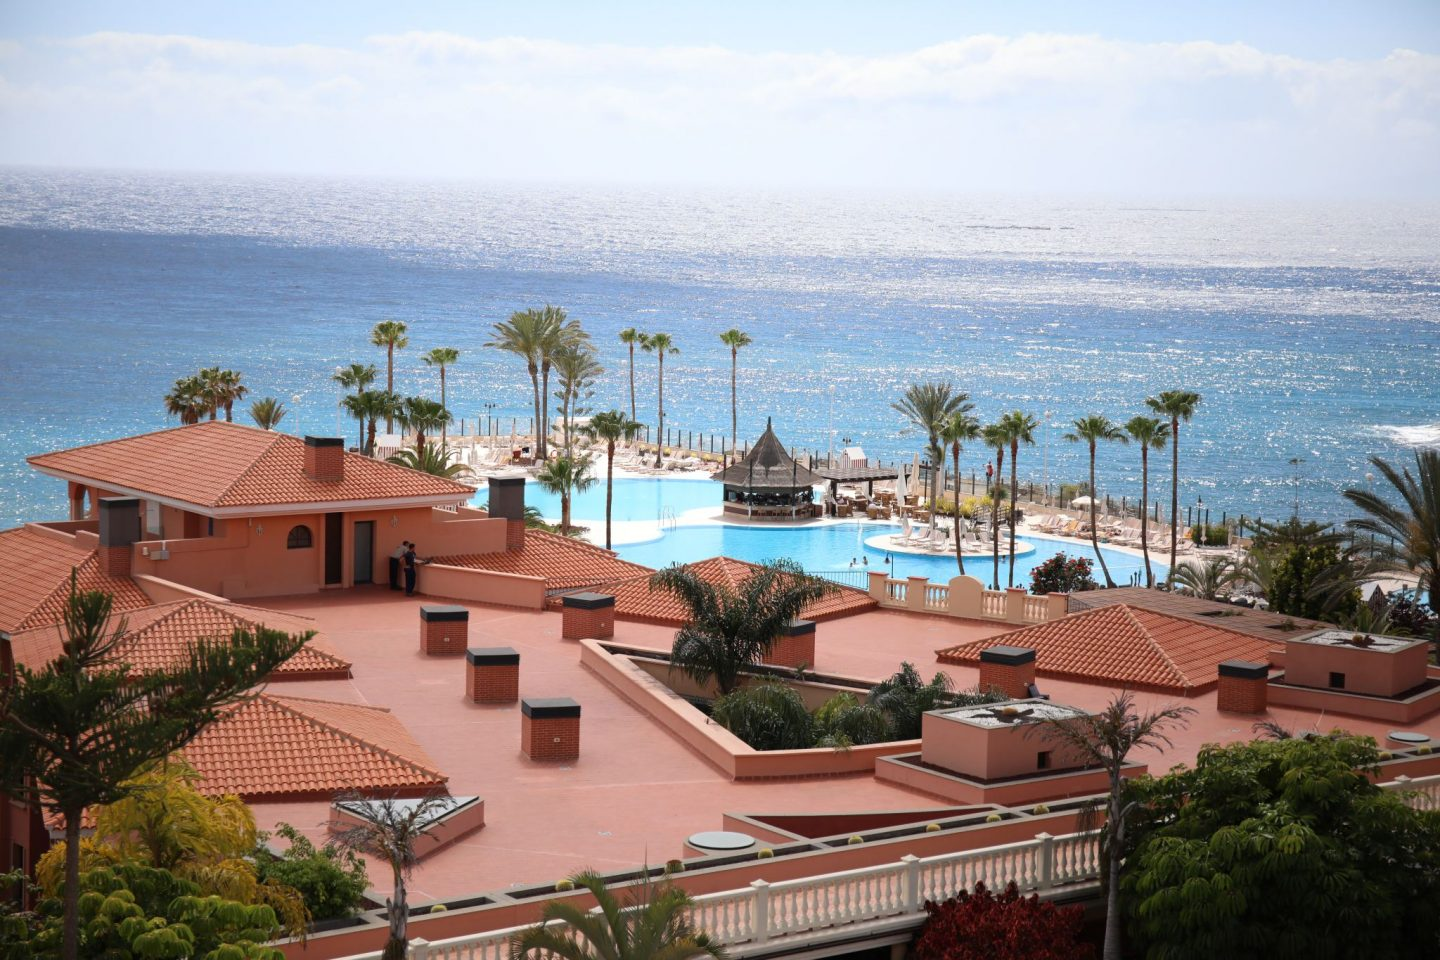 Iberostar Anthelia Hotel, Tenerife, Canary Islands, Katie Heath, KALANCHOE